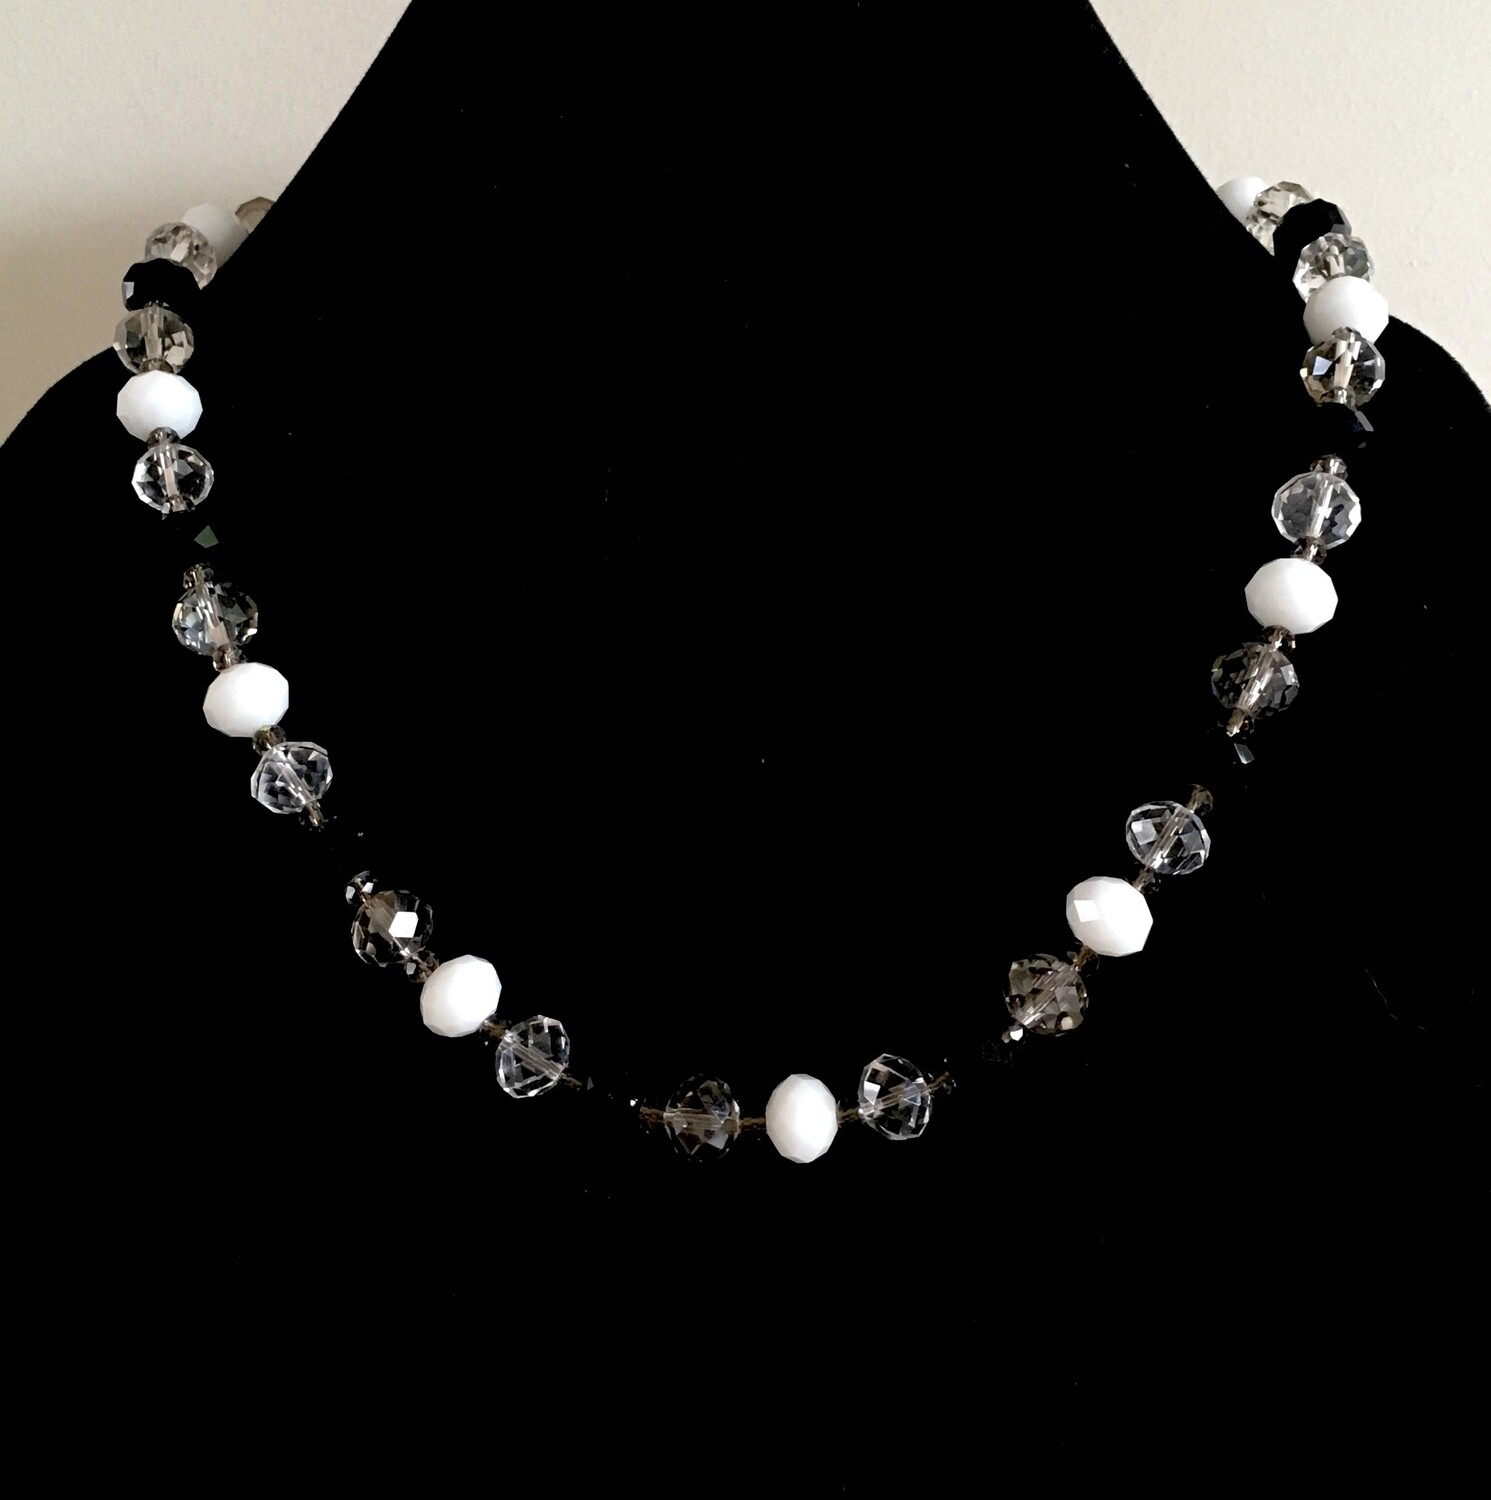 White,black and transparent faceted beads necklace